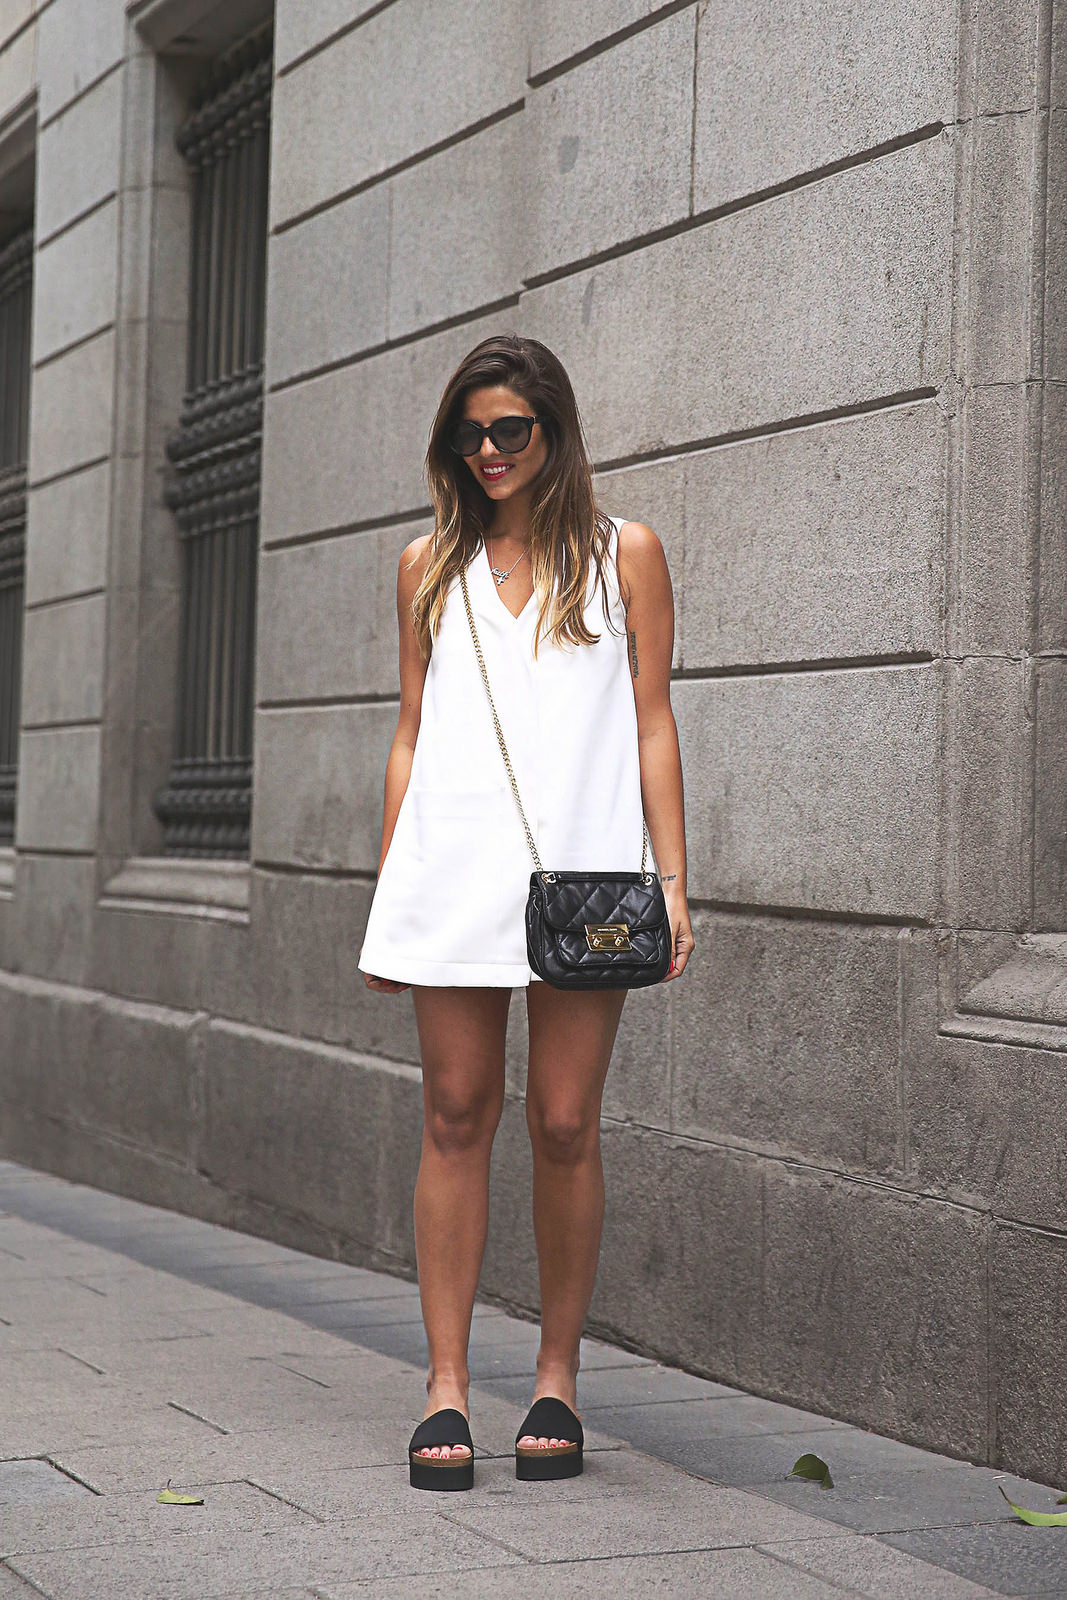 As simple as it gets. A white dress paired up with a black bag and black shoes Via Natalia Cabezas Dress: Zara, Shoes: Steve Madden, Bag: Michael Kors, Sunglasses: Prada